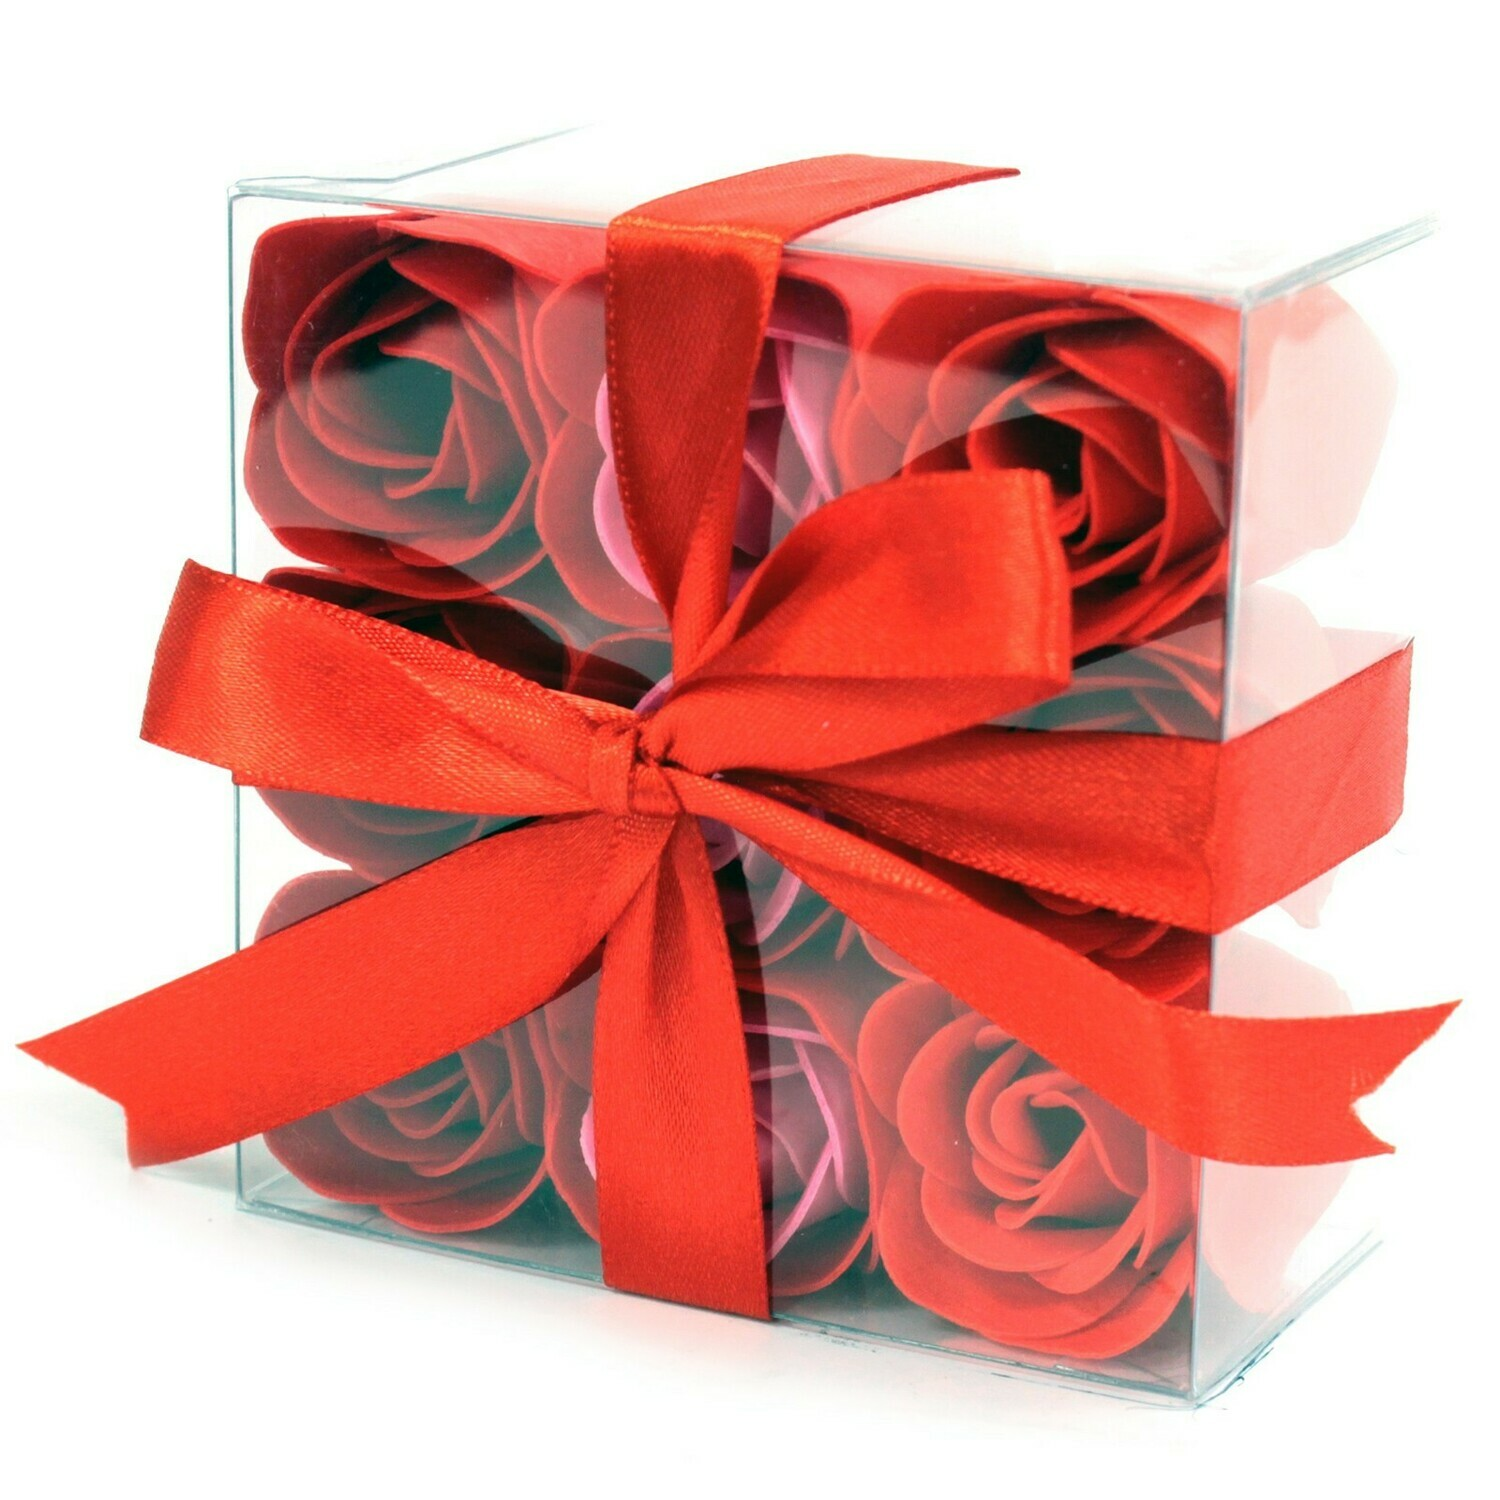 18 Luxury Soap Roses - 9 Lavender and 9 Red